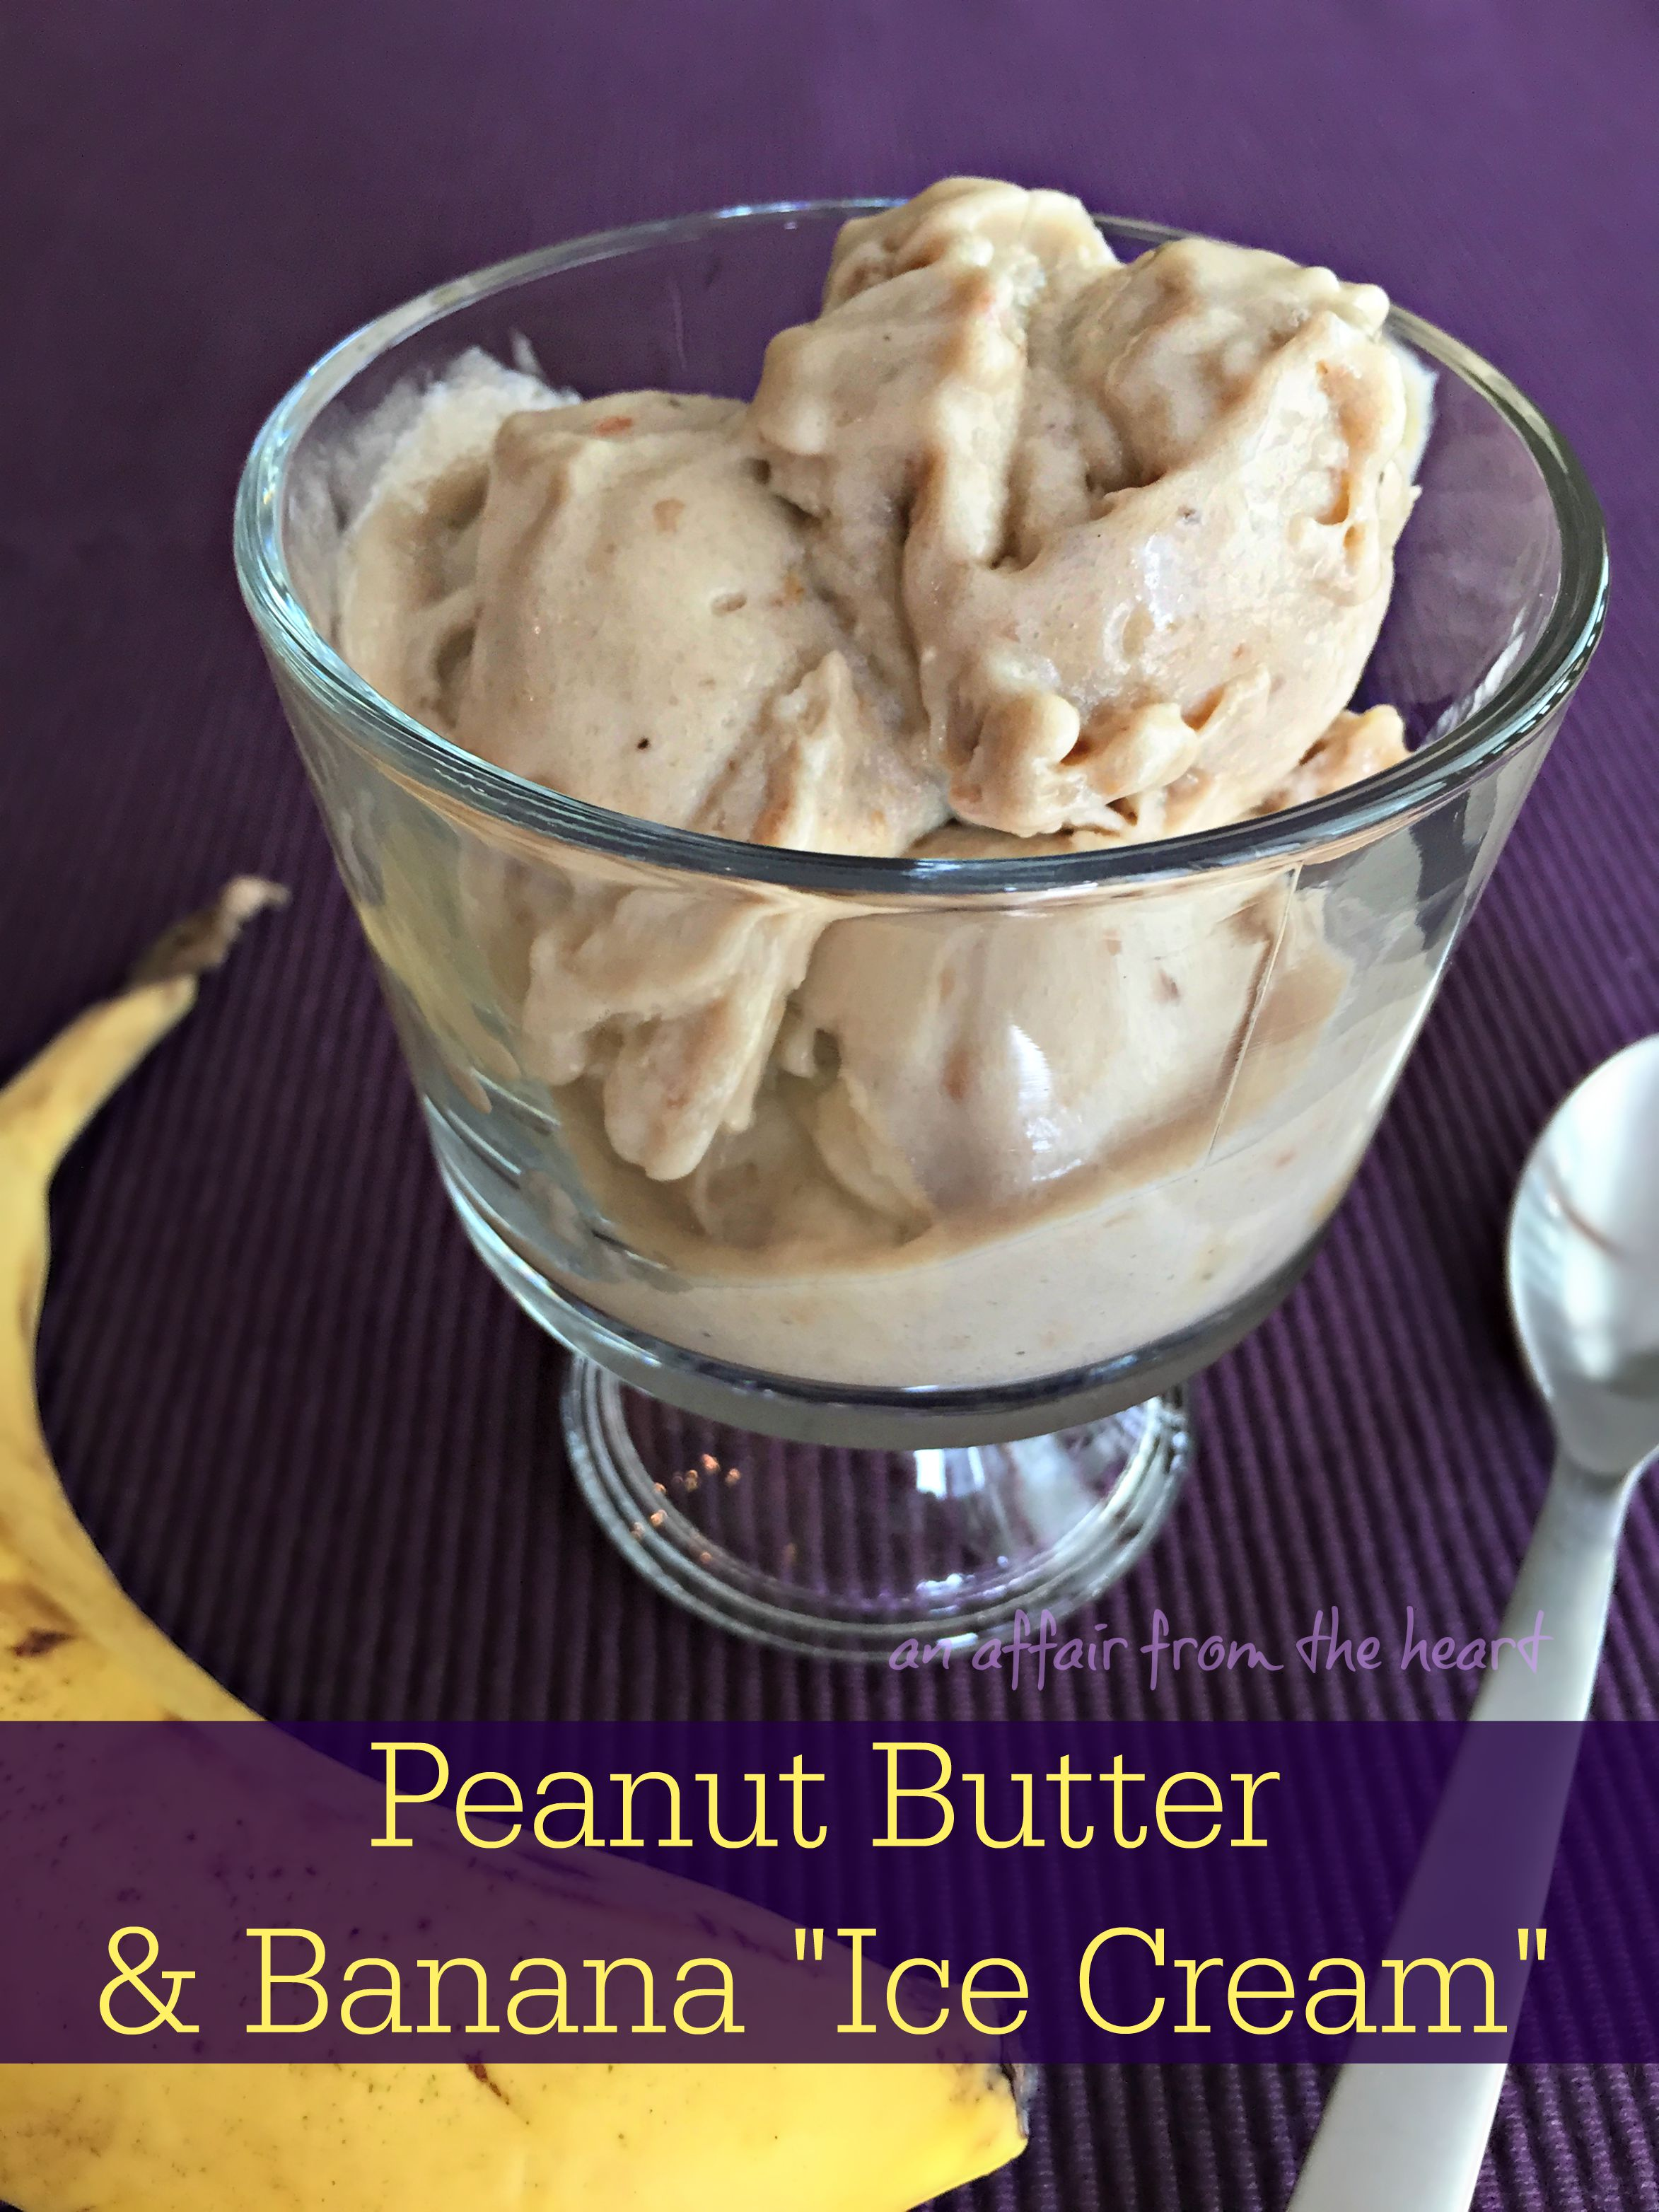 banana and peanut butter 4-ngredient 'ce cream'